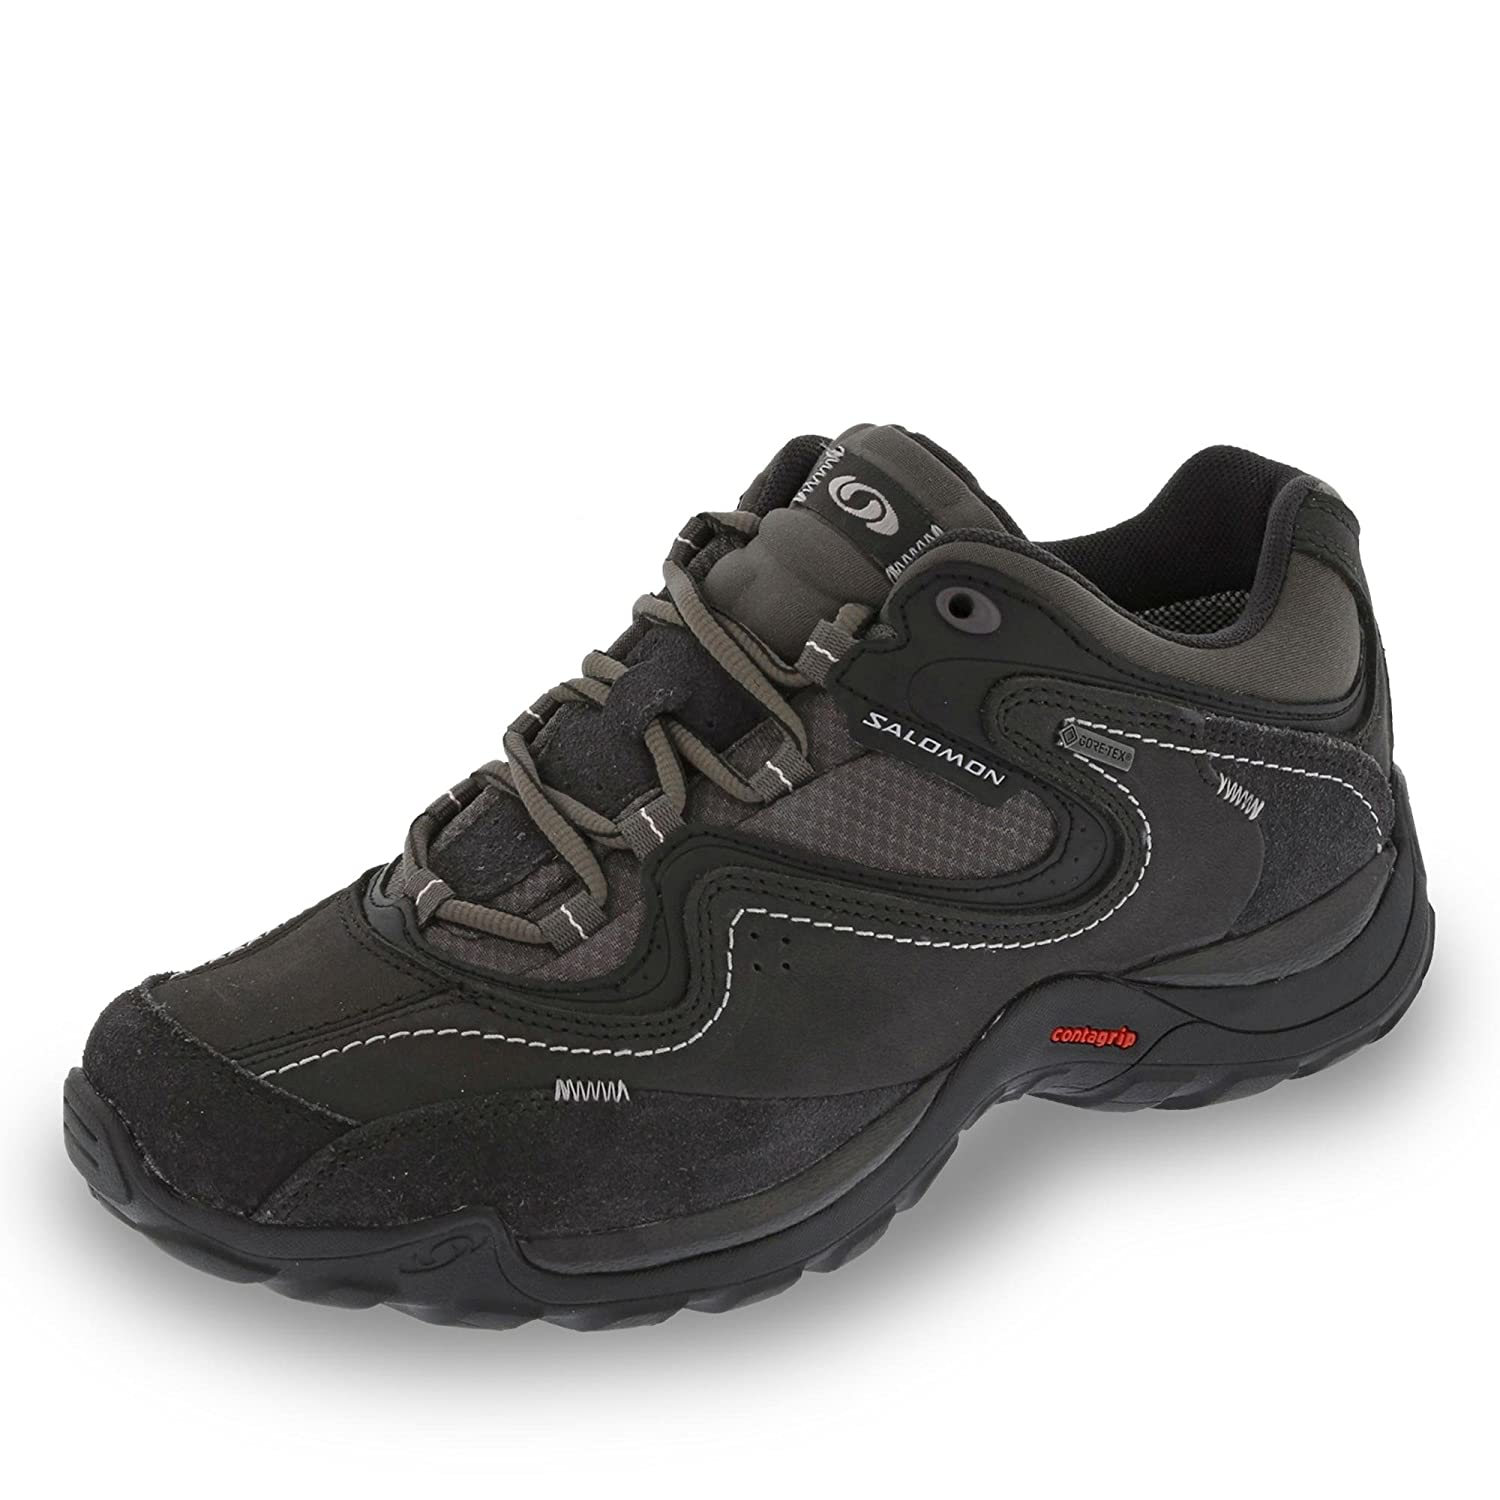 Salomon 2 Elios 2 Salomon GTX Damens fe04b3